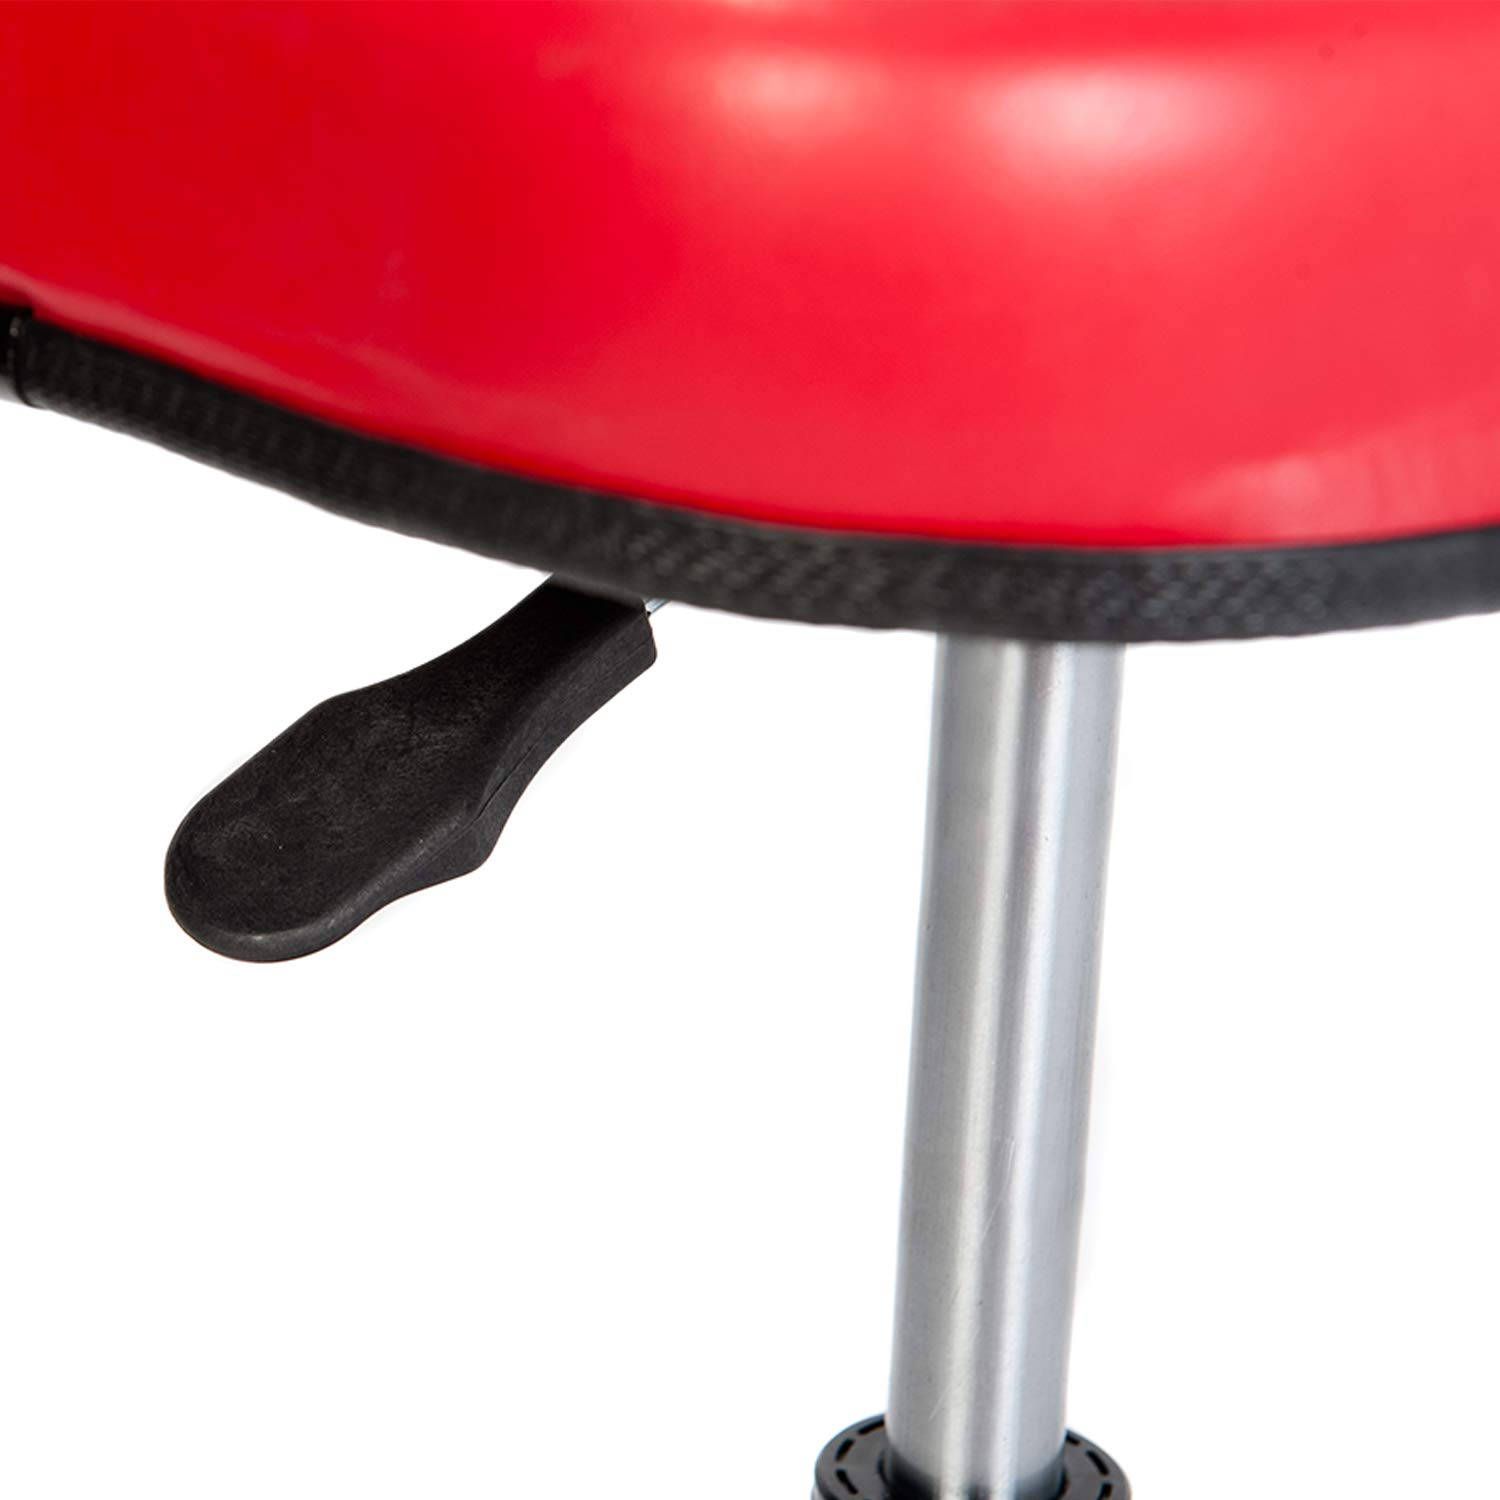 RTJ 300 lbs Capacity Pneumatic Mechanic Roller Seat Adjustable Rolling Stool, Red by RTJ (Image #4)